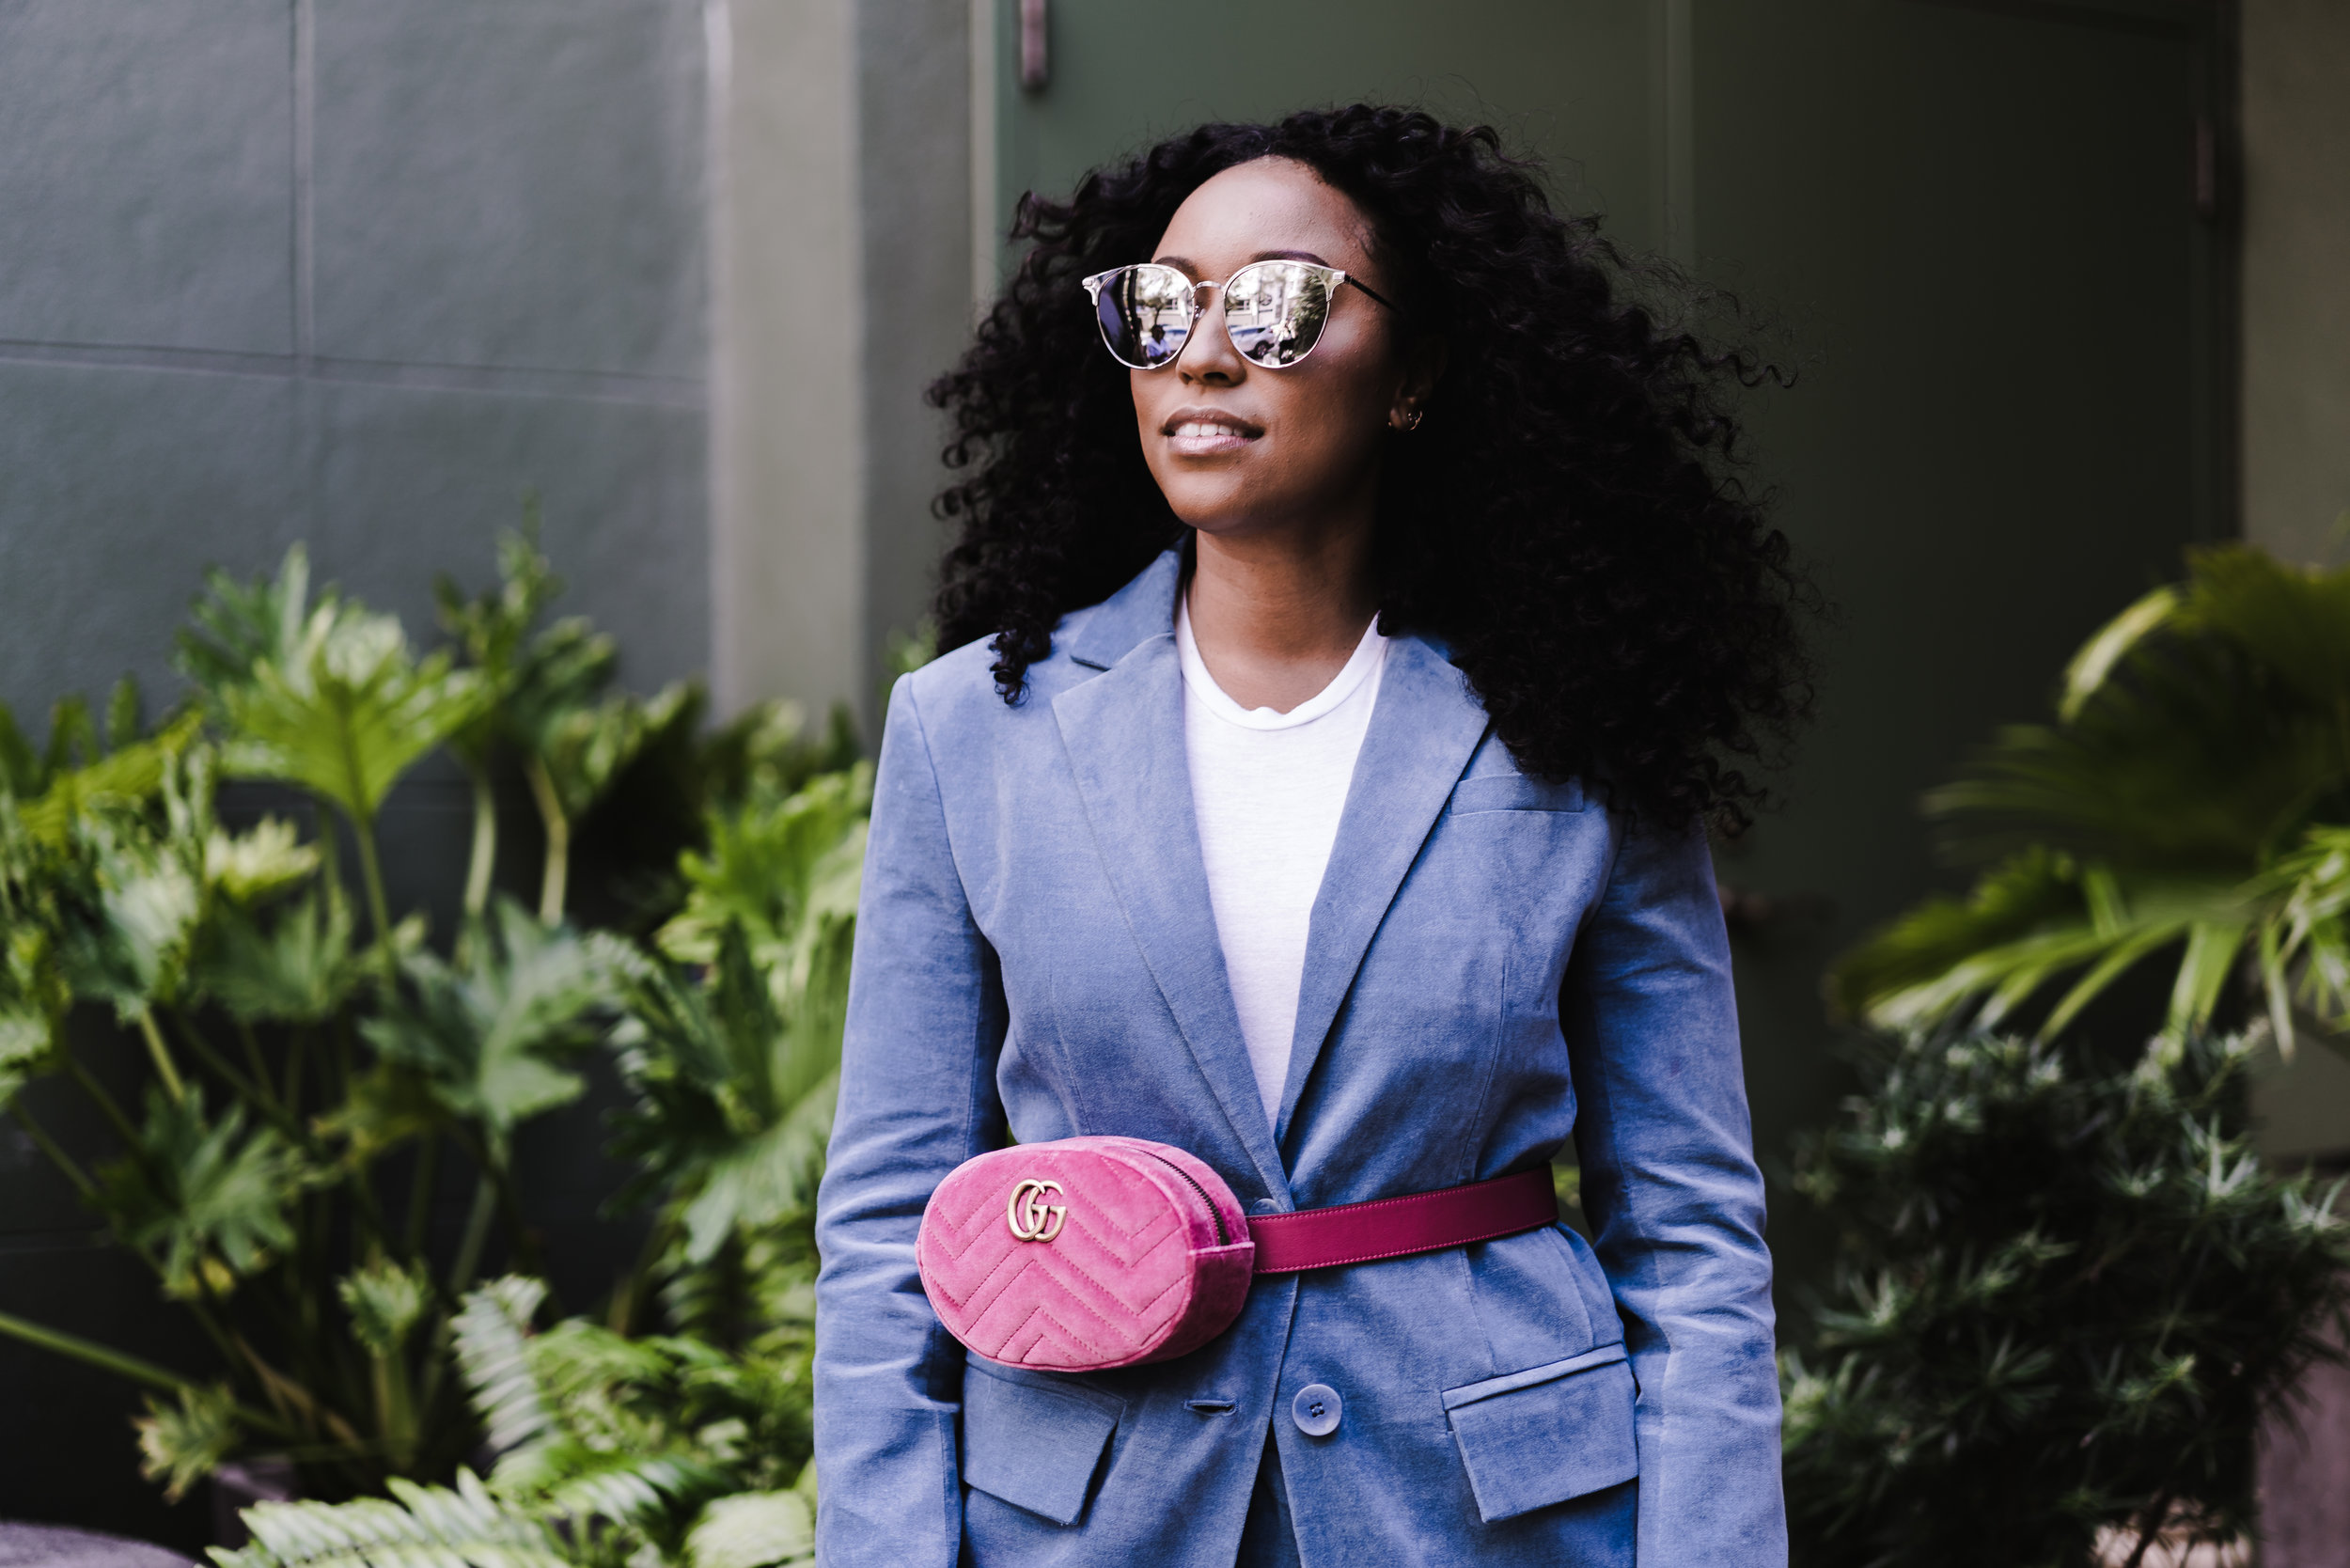 TIBI  Corset-back blazer (Shop it  here ),  GUCCI  belt bag (Shop it  here ),  SAINT LAURENT  mirrored sunglasses (Shop it  here )